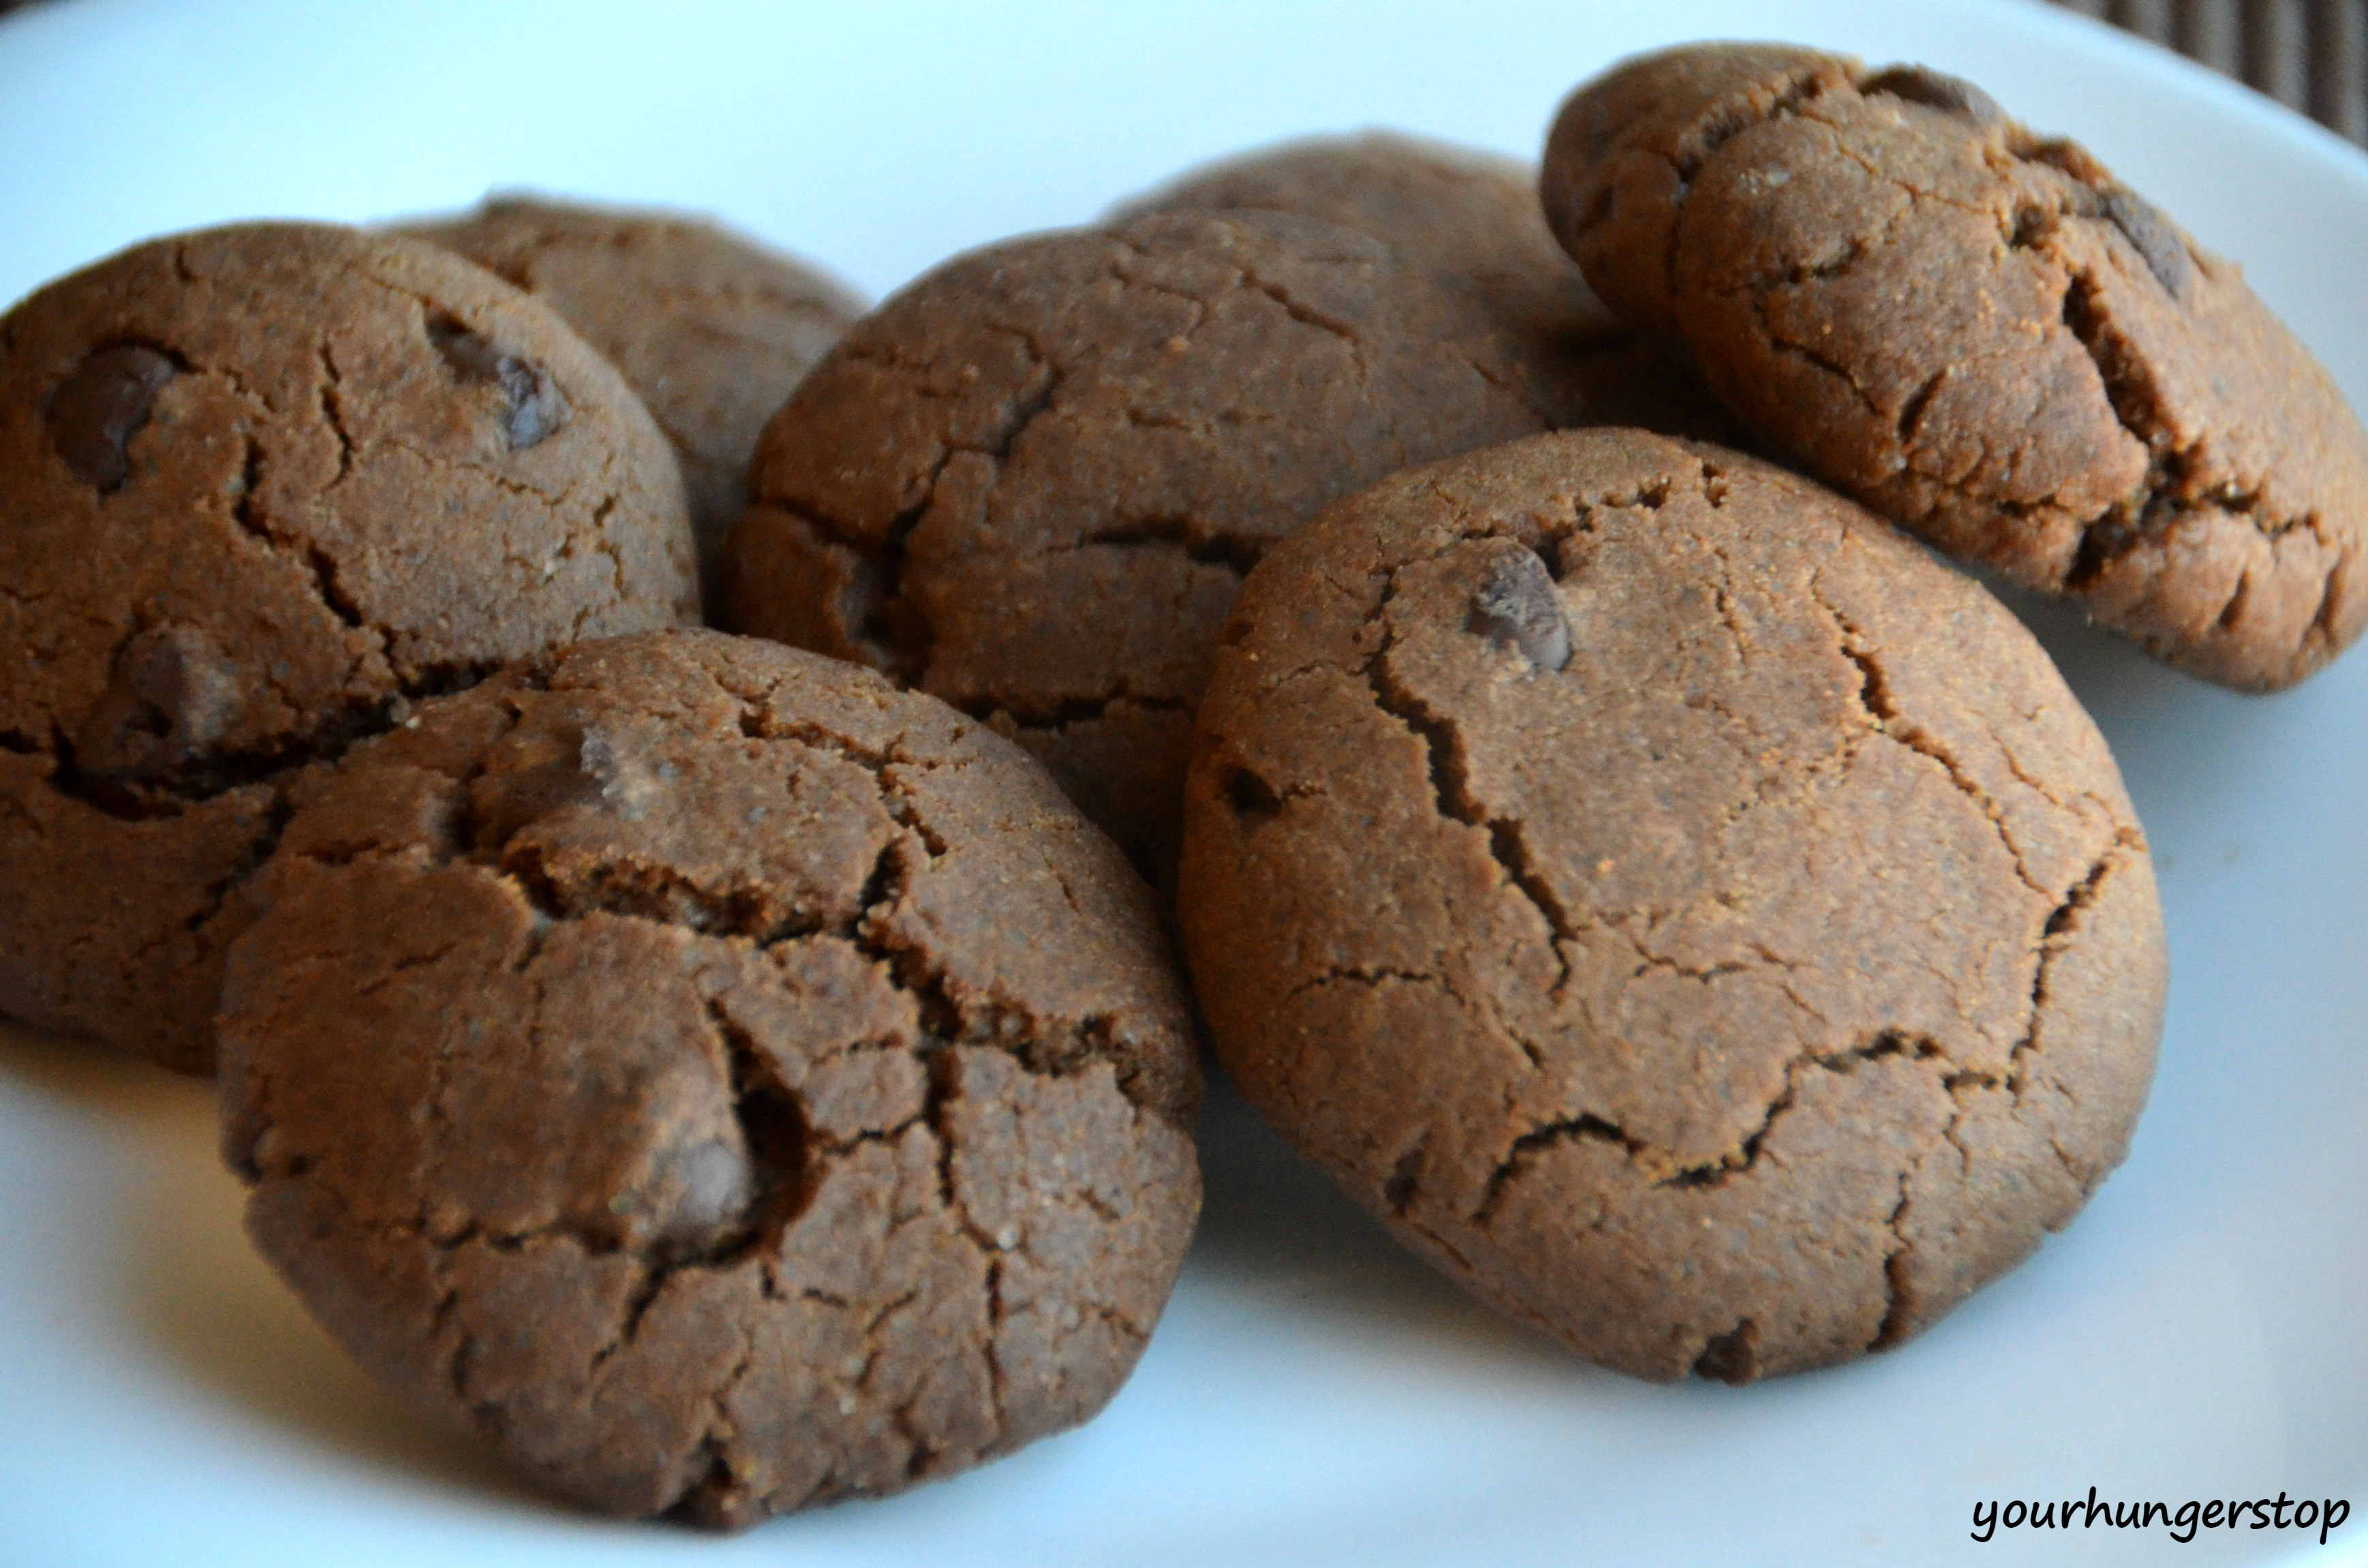 Nothing is more delicious and tempting than warm chocolate cookies ...